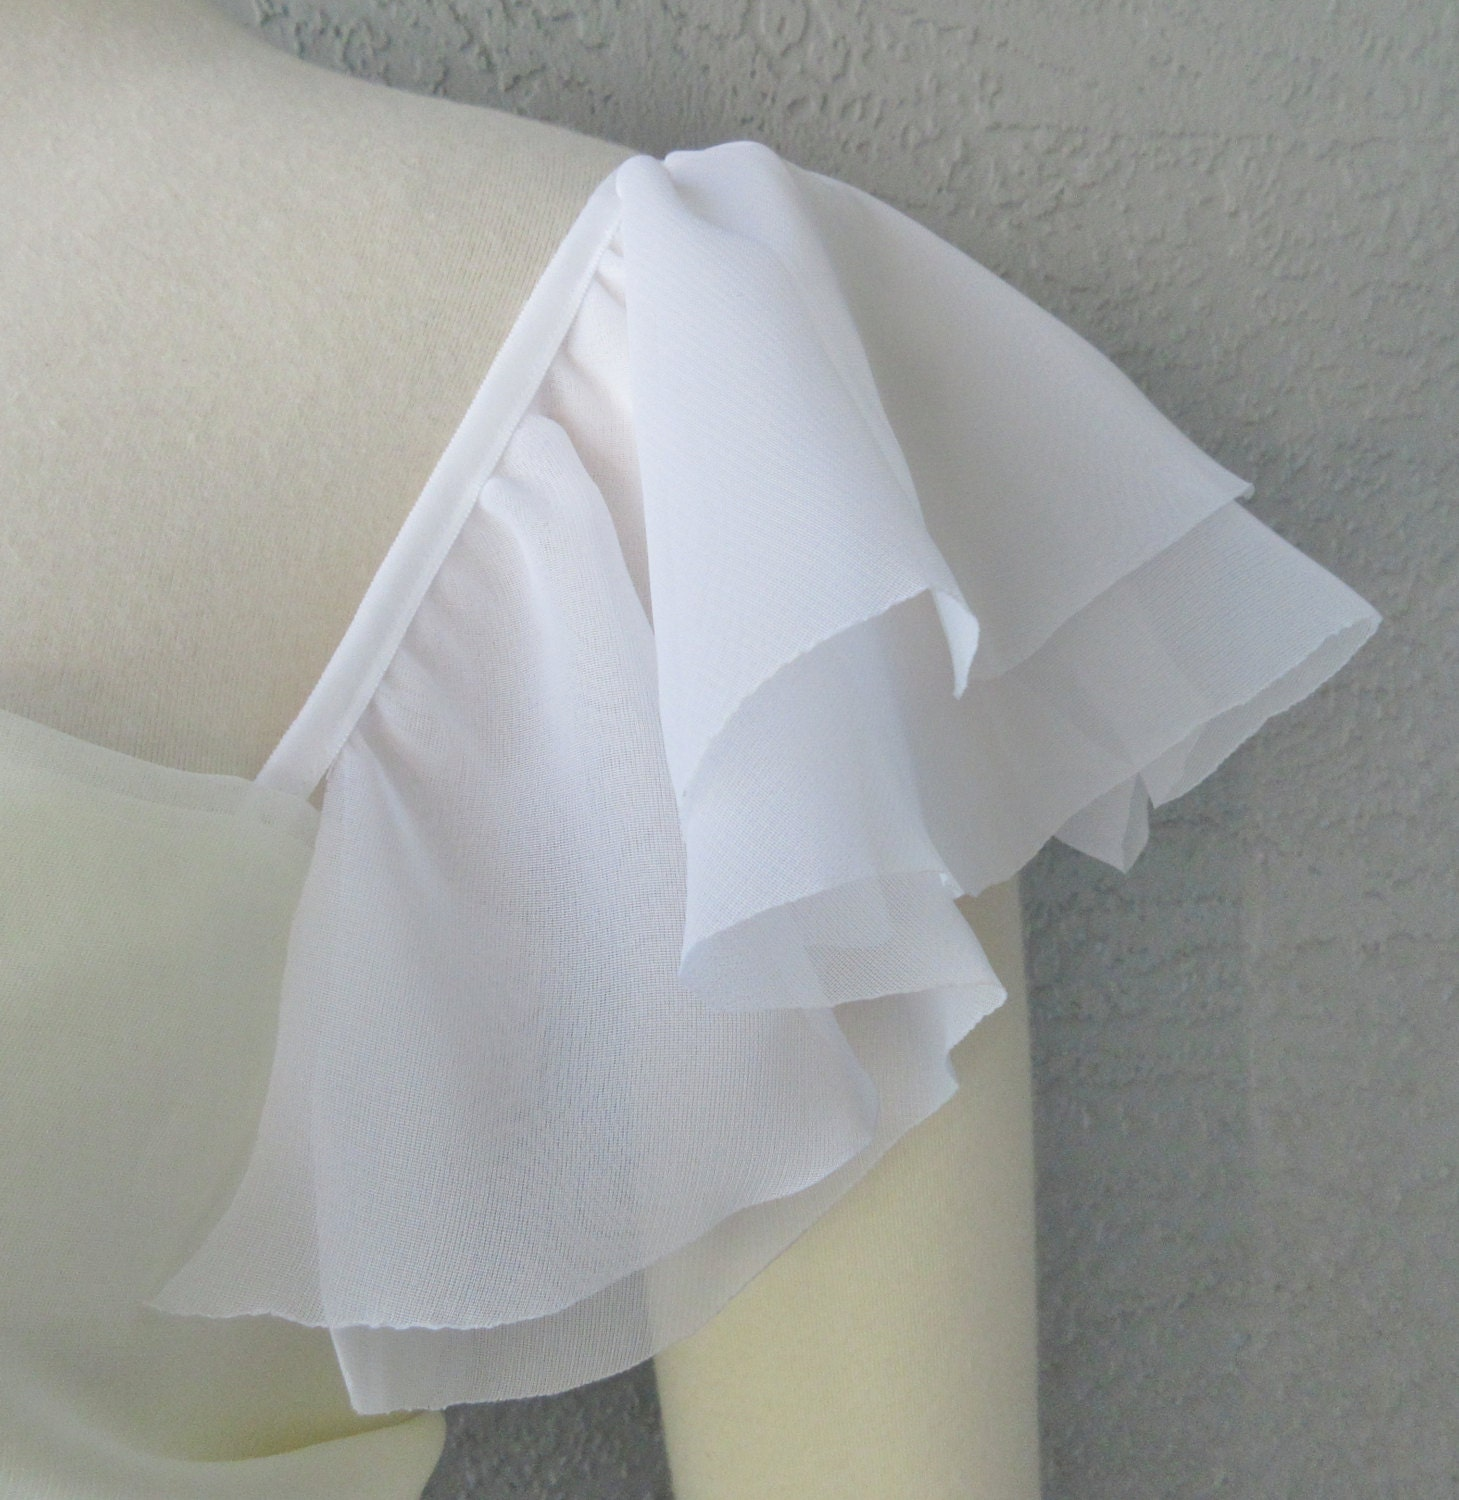 Detachable Ivory or White Chiffon fabric by Chuletindesigns